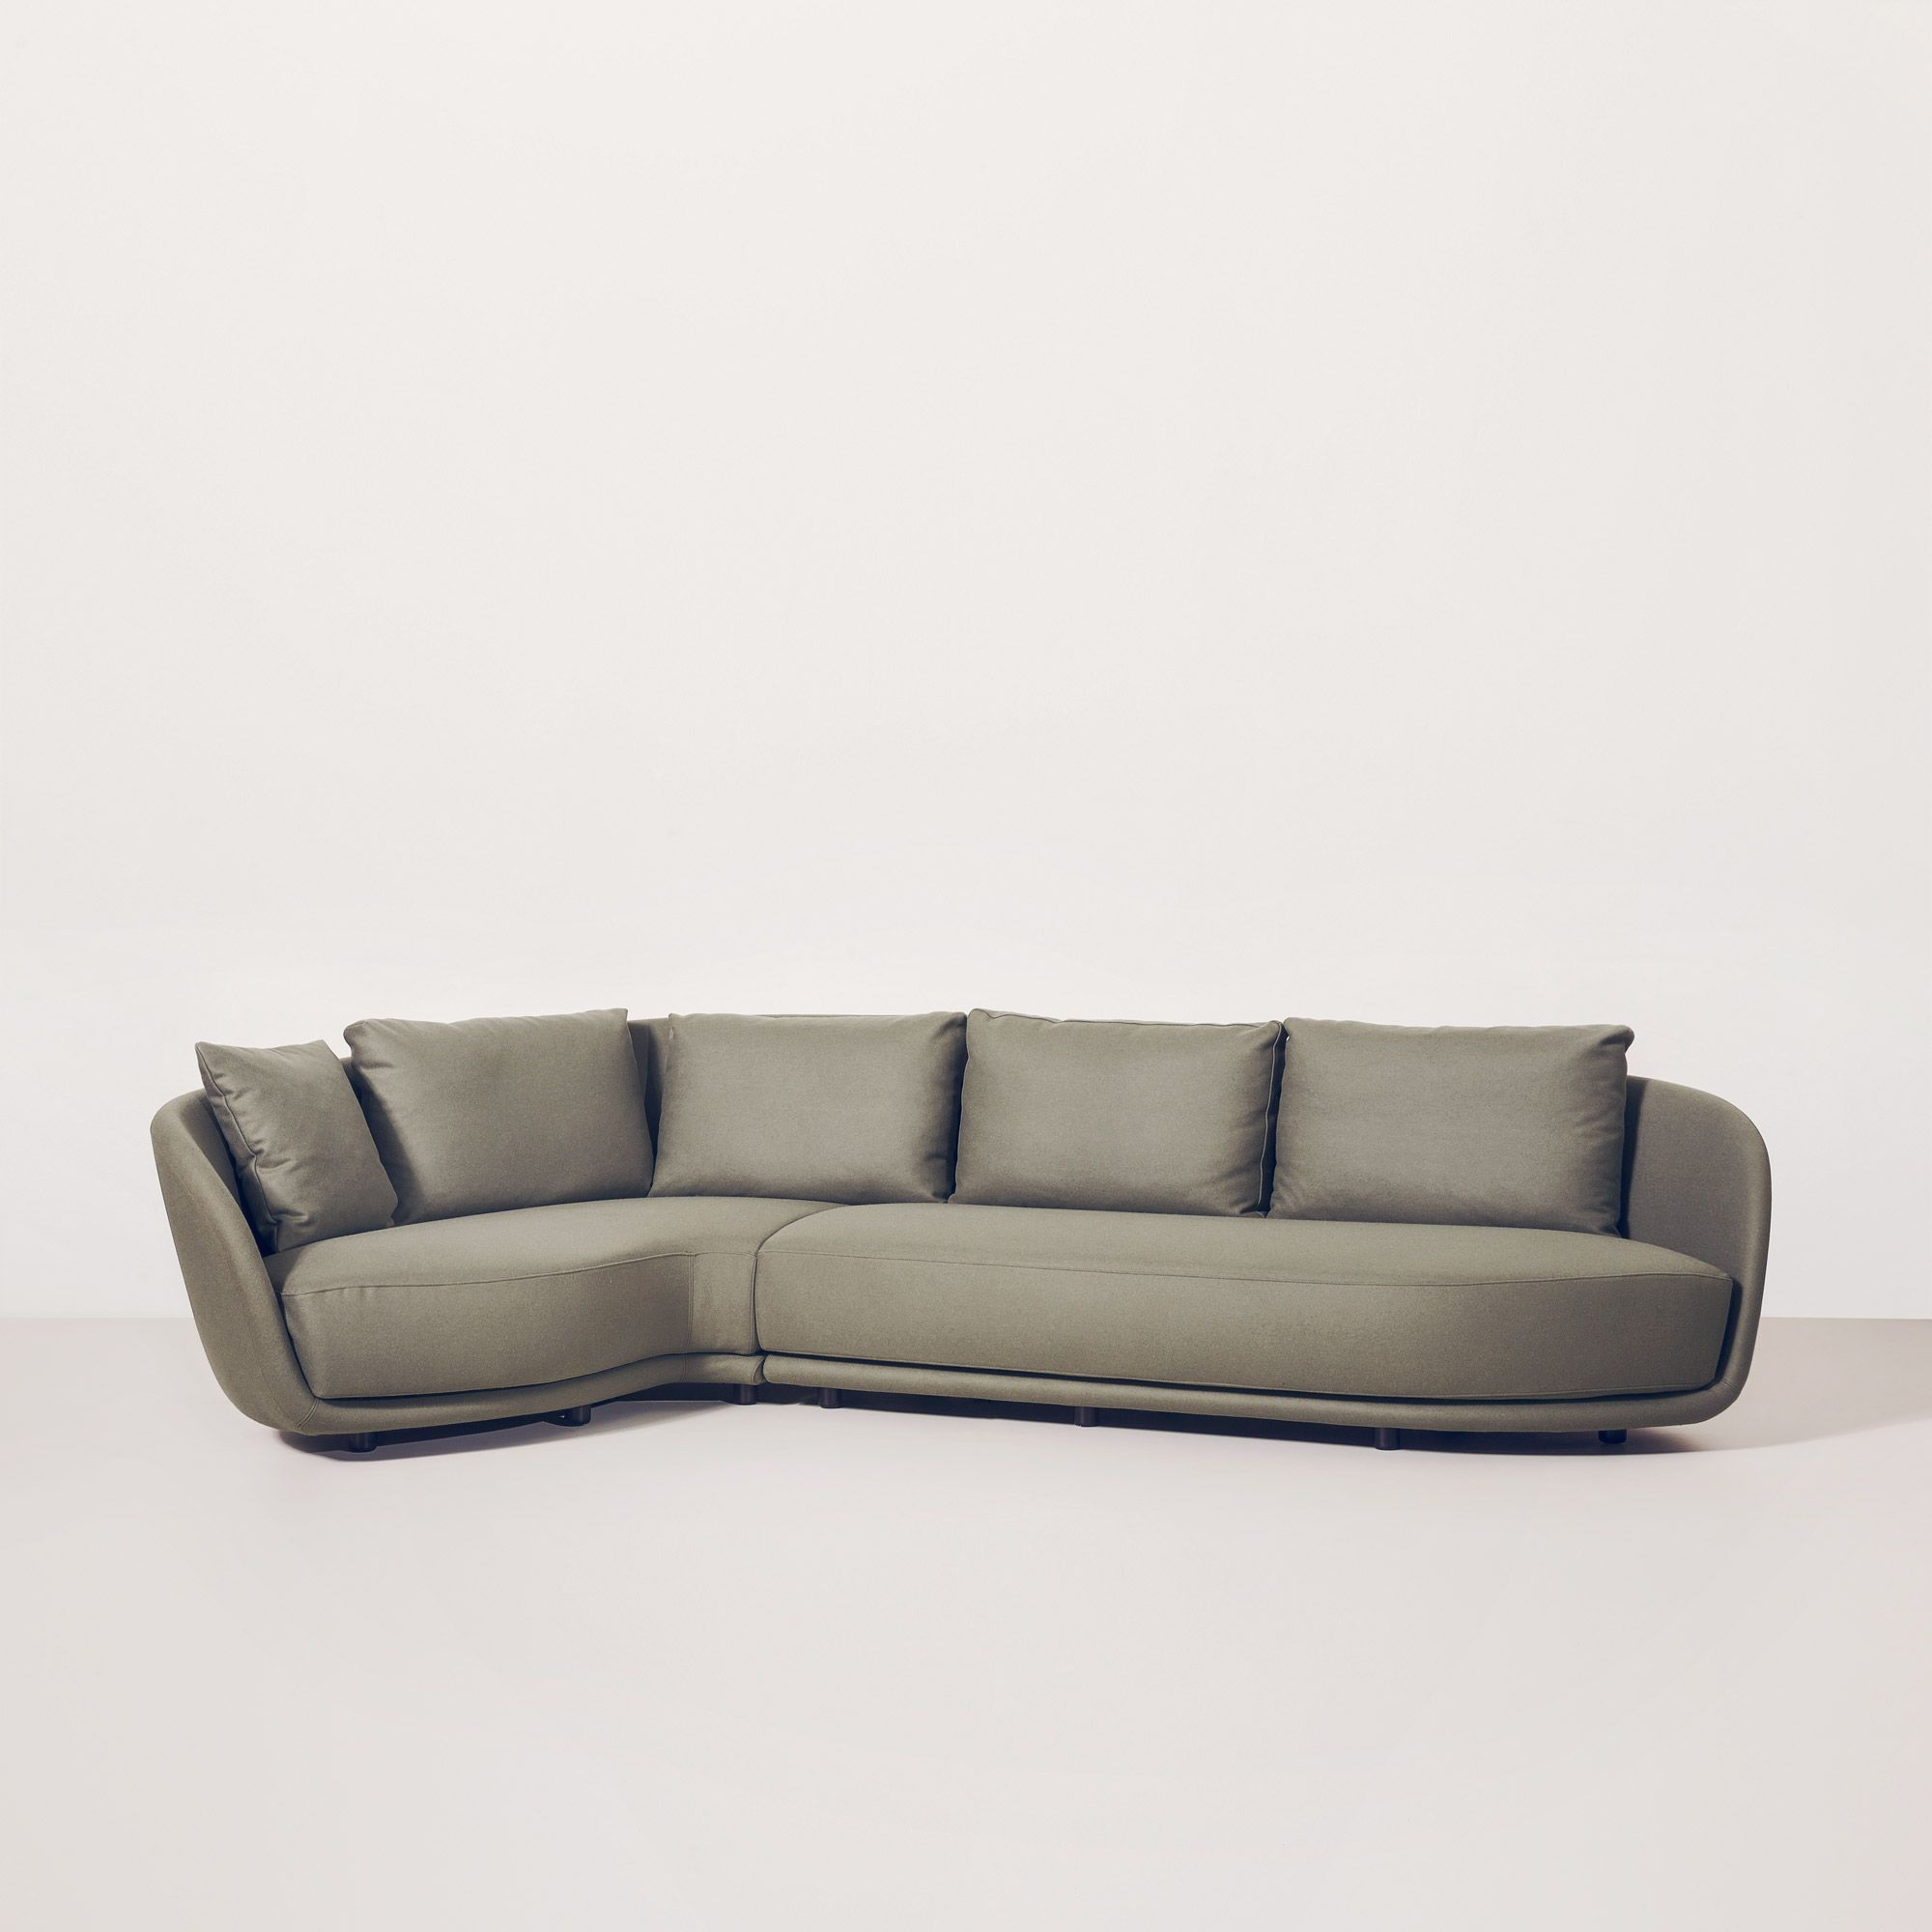 Heath Sofa By Linteloo Sofa Cushions On Sofa Luxury Sofa